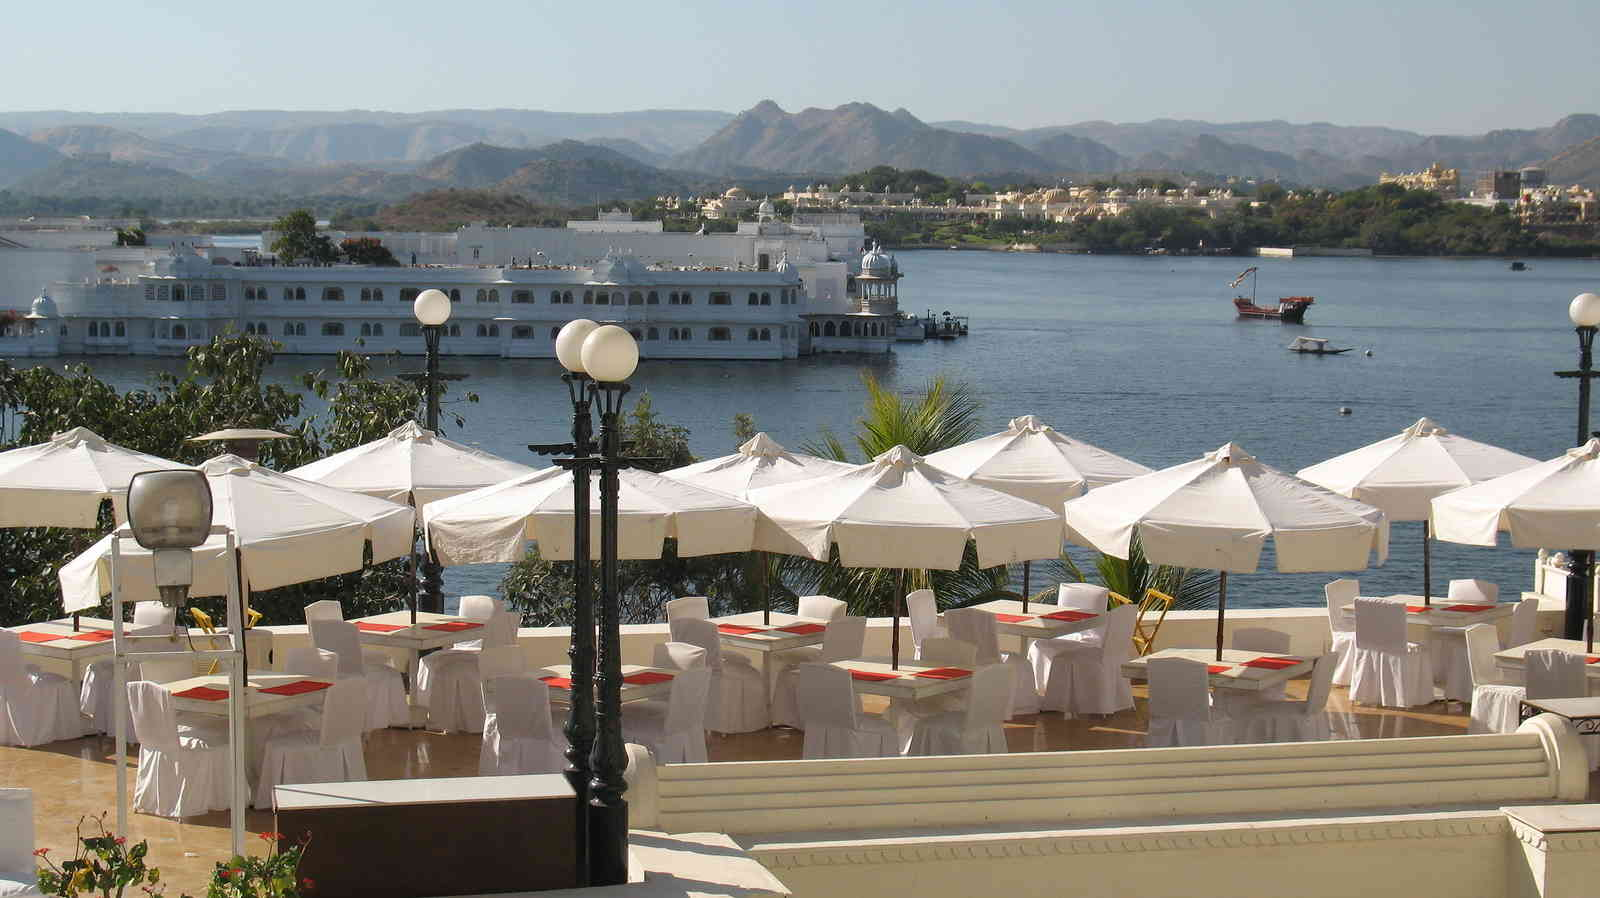 View_of_Lake_Pichola_from_café_terrace_Udaipur